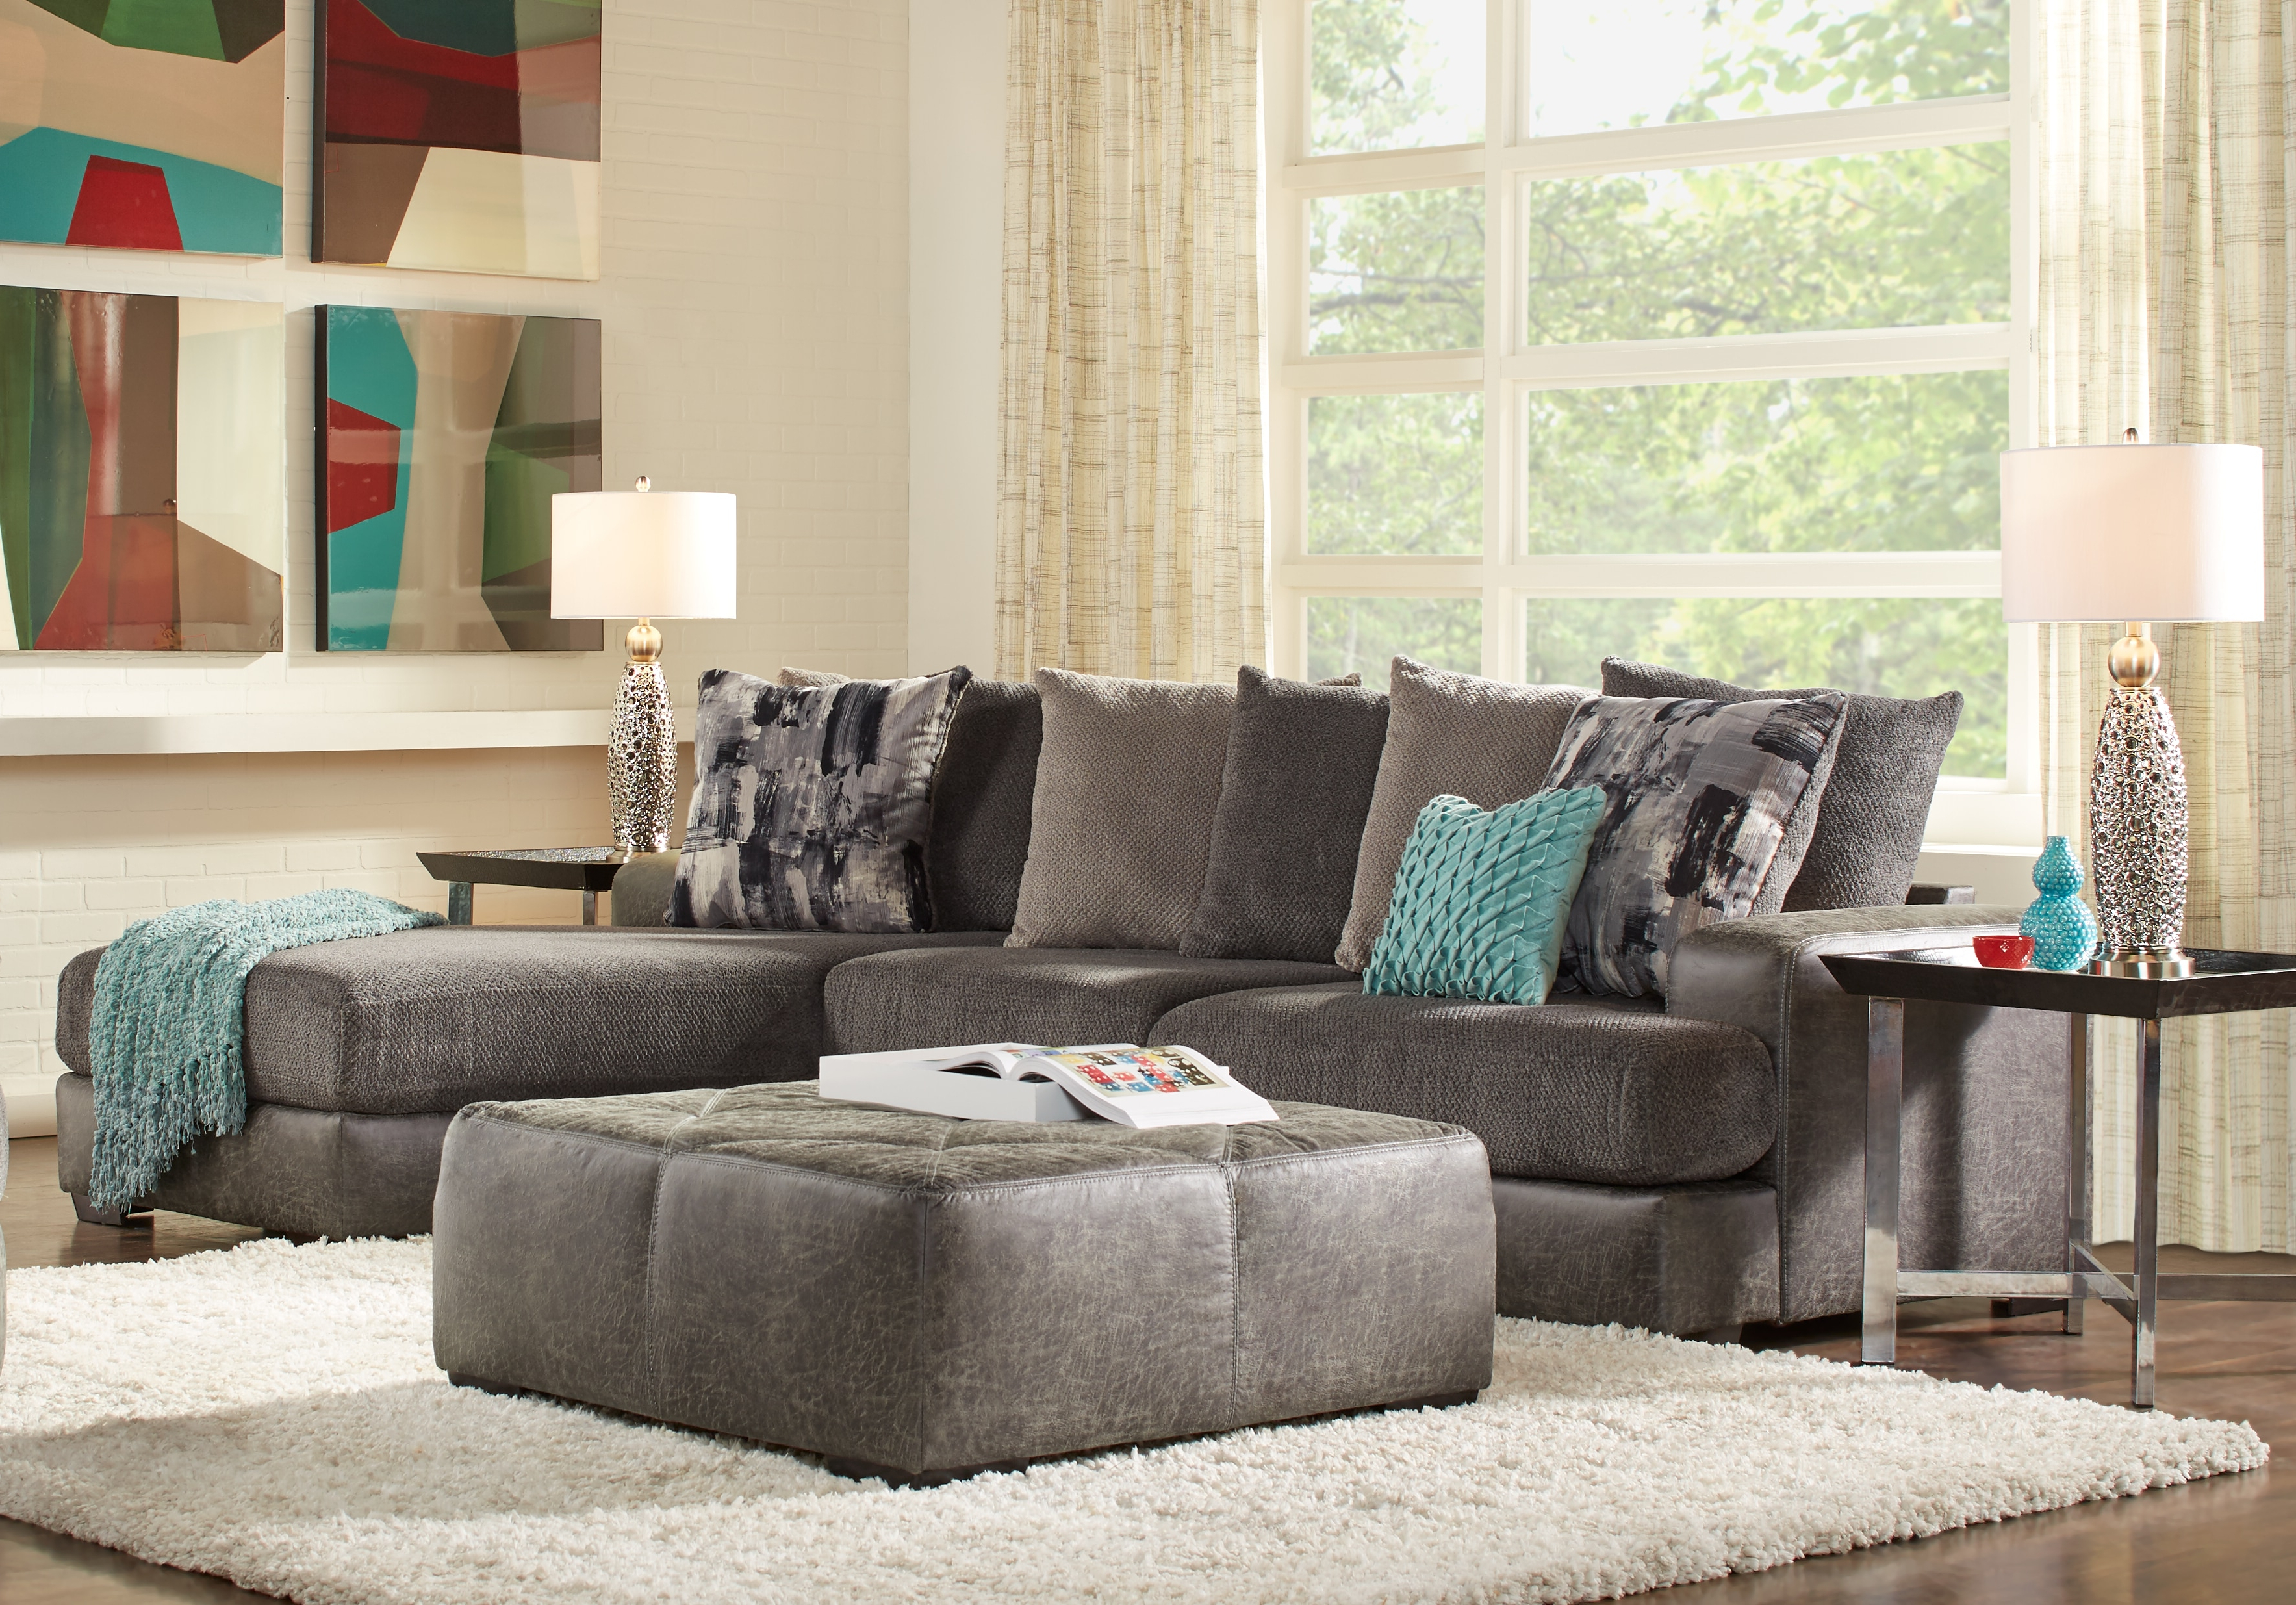 Foster Square Graphite 2 Pc Sectional – Living Room Sets (Gray) Within Newest Mcdade Graphite Sofa Chairs (View 4 of 20)